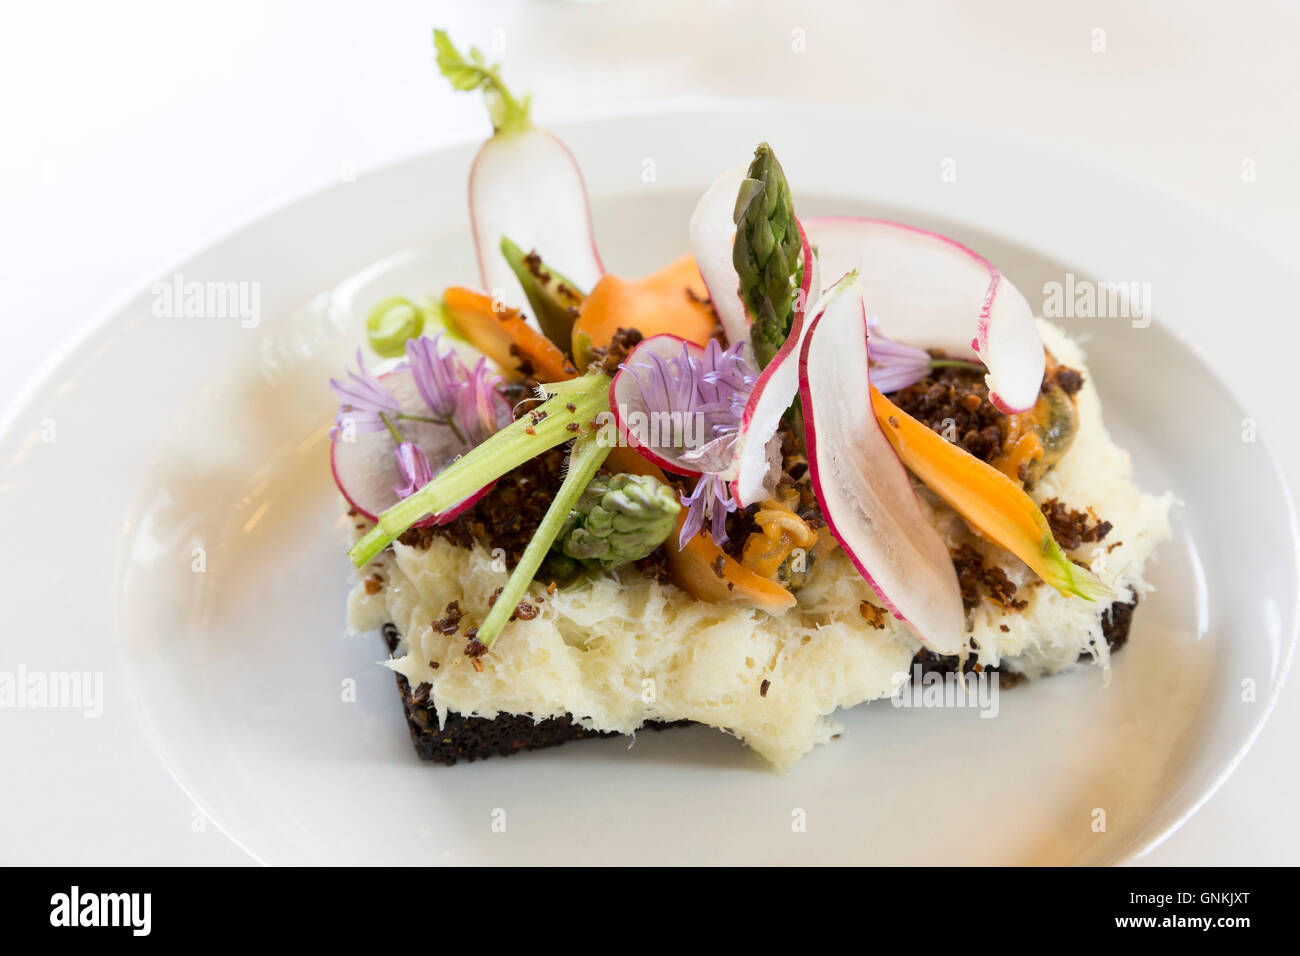 Lunch snacks cod fish Smorrebrod - smorgasbord Nordic open sandwich on minimalist white china plate - in Denmark - Stock Image